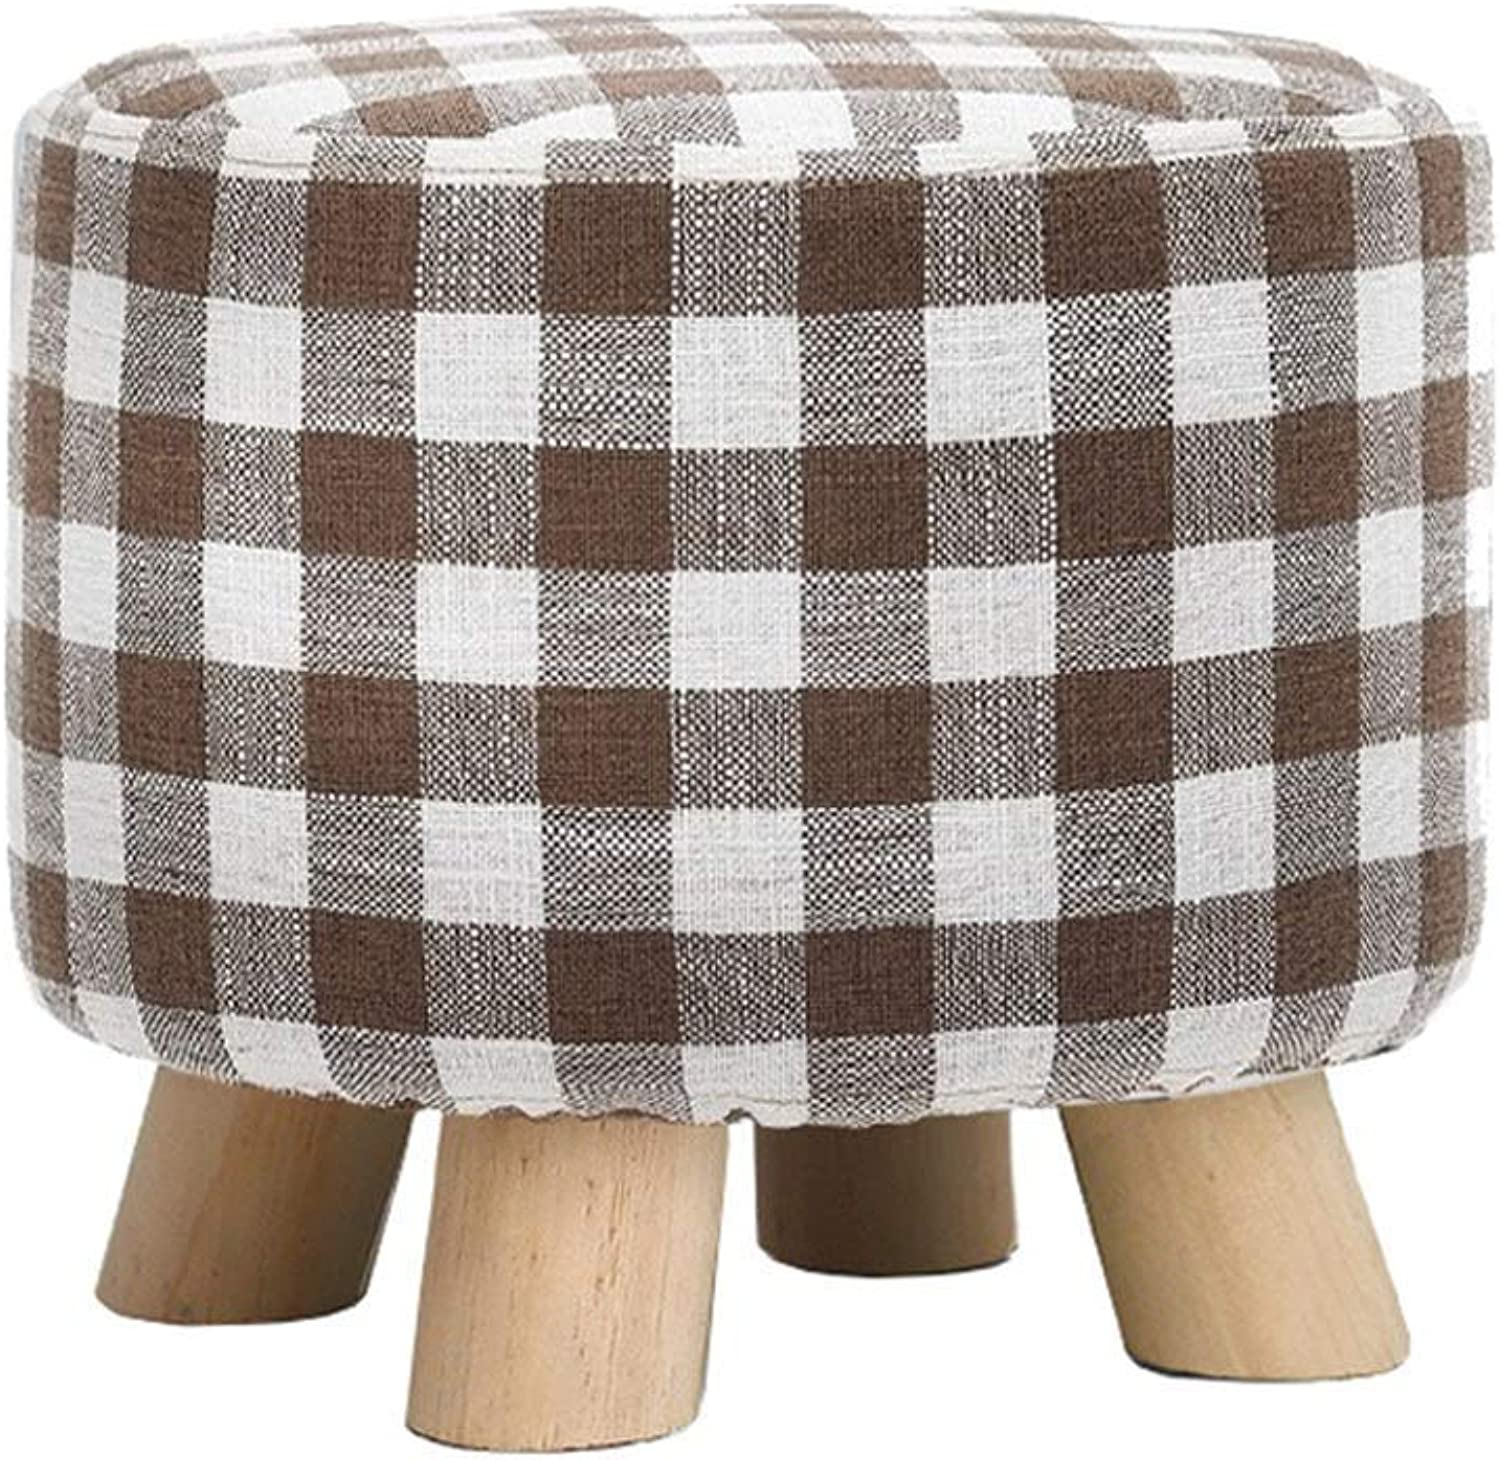 Household Solid Wood Cotton Linen Makeup Stool Durable Footstool Round Lattice Chair Change shoes Small Bench Kitchen Footstool Footstool